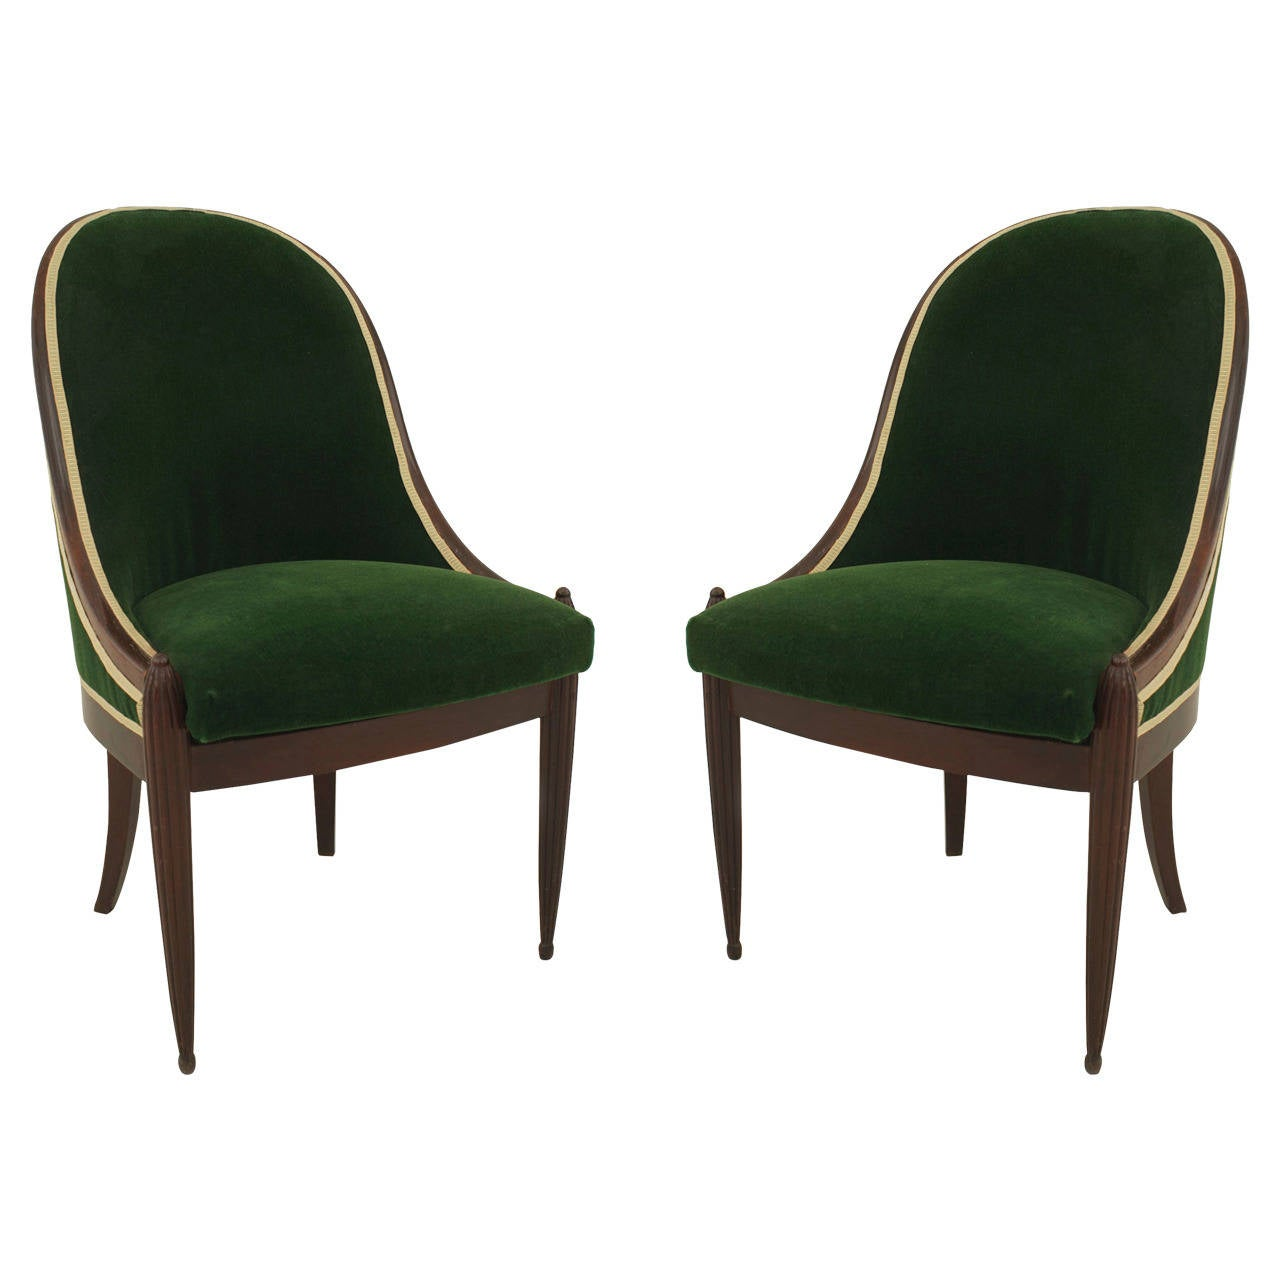 Pair Of French Art Deco Green Velvet Upholstered Mahogany